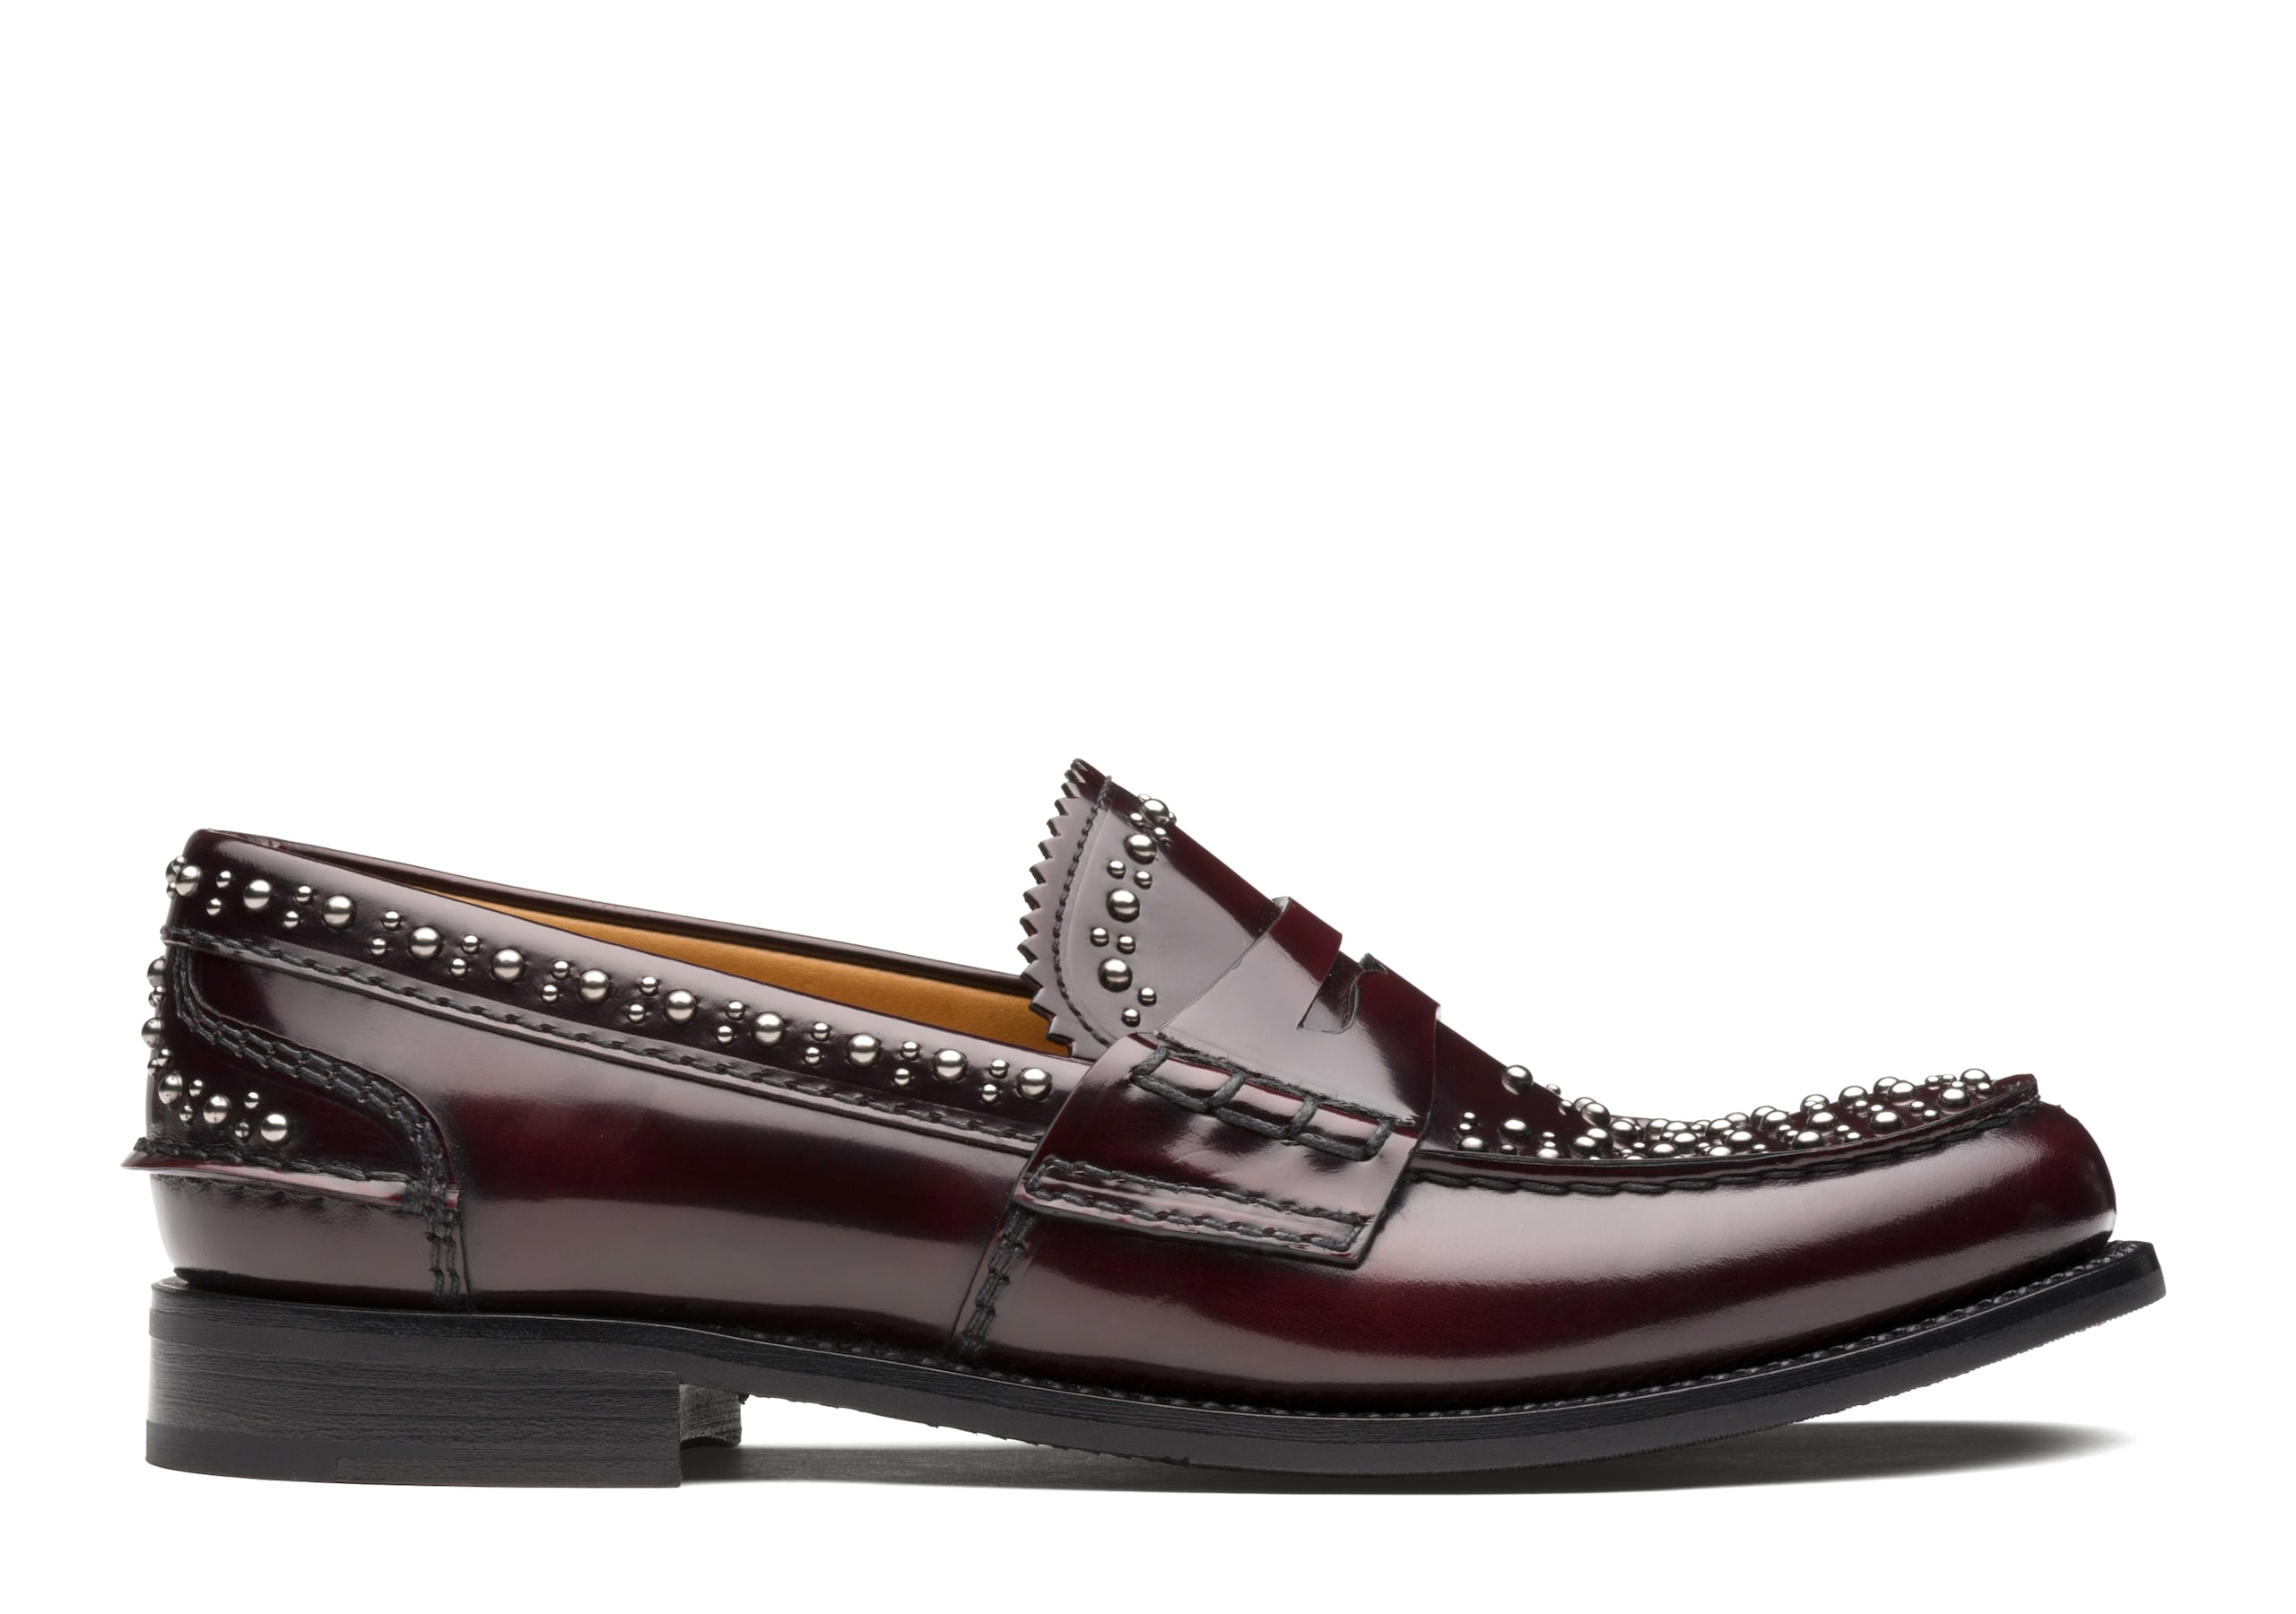 Pembrey met. w Church's Polished Fumè Loafer  Stud Burgundy